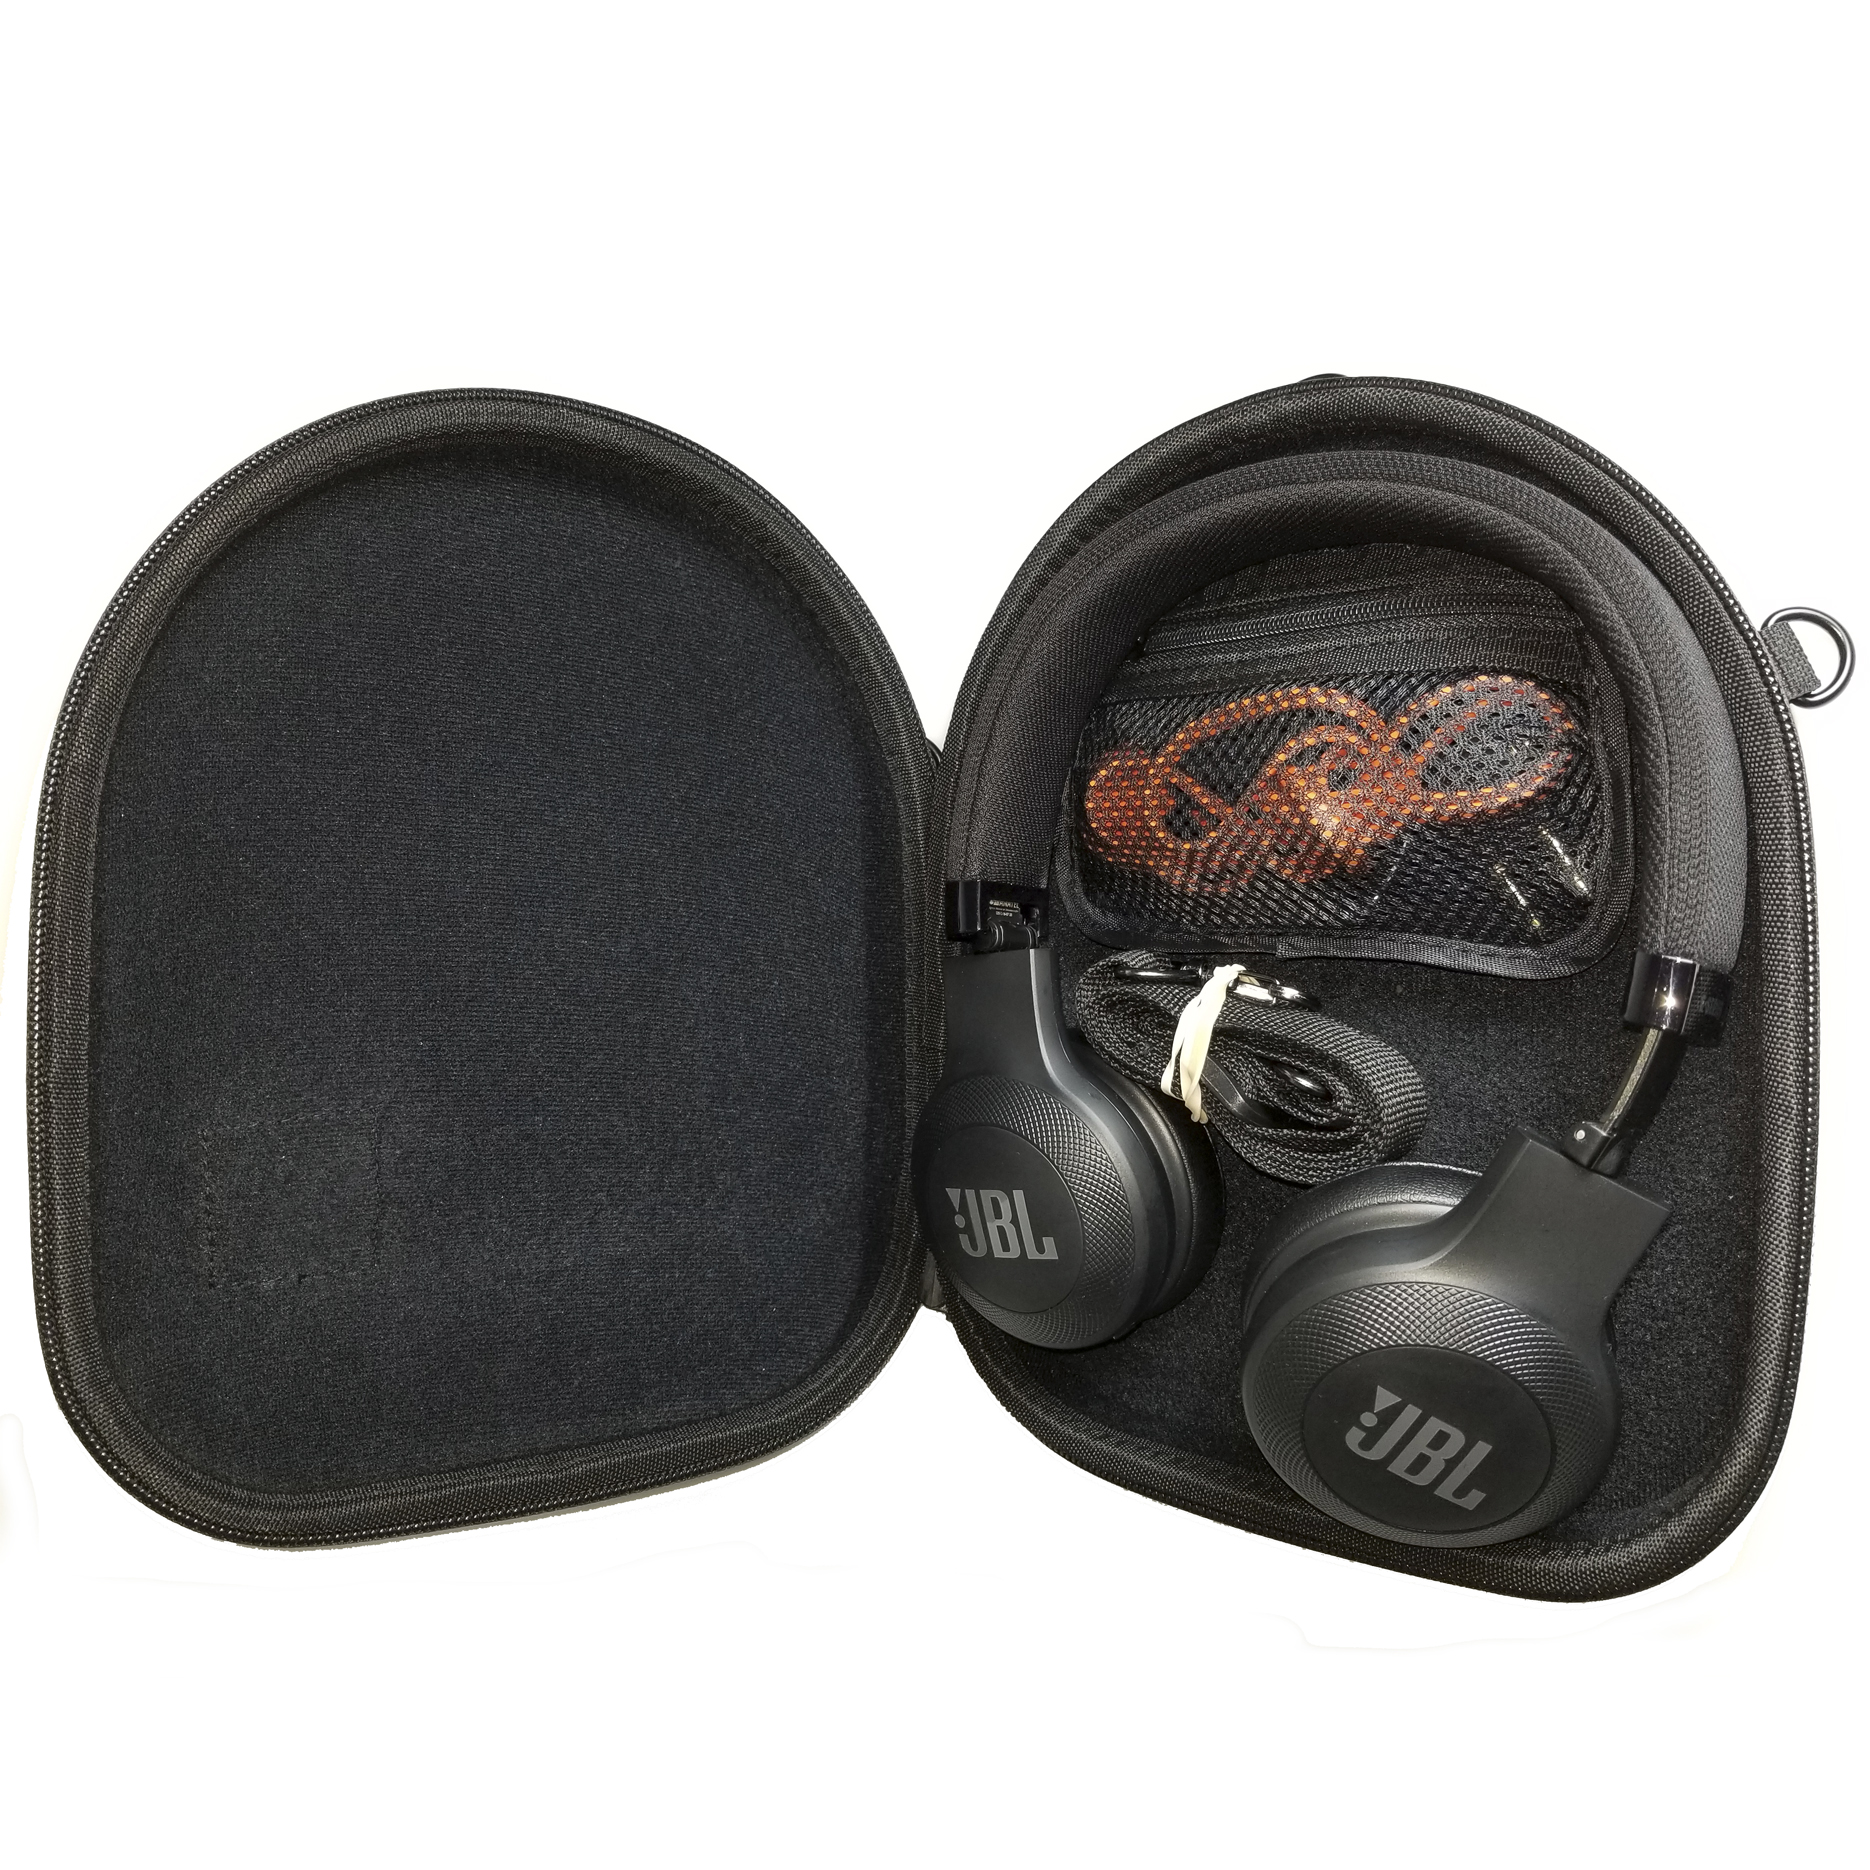 Protective Case for JBL E45BT On-Ear OE Wireless Headphones. Also Fits Many Other Headphone On Ear OE and Around Ear AE Brands and Models.